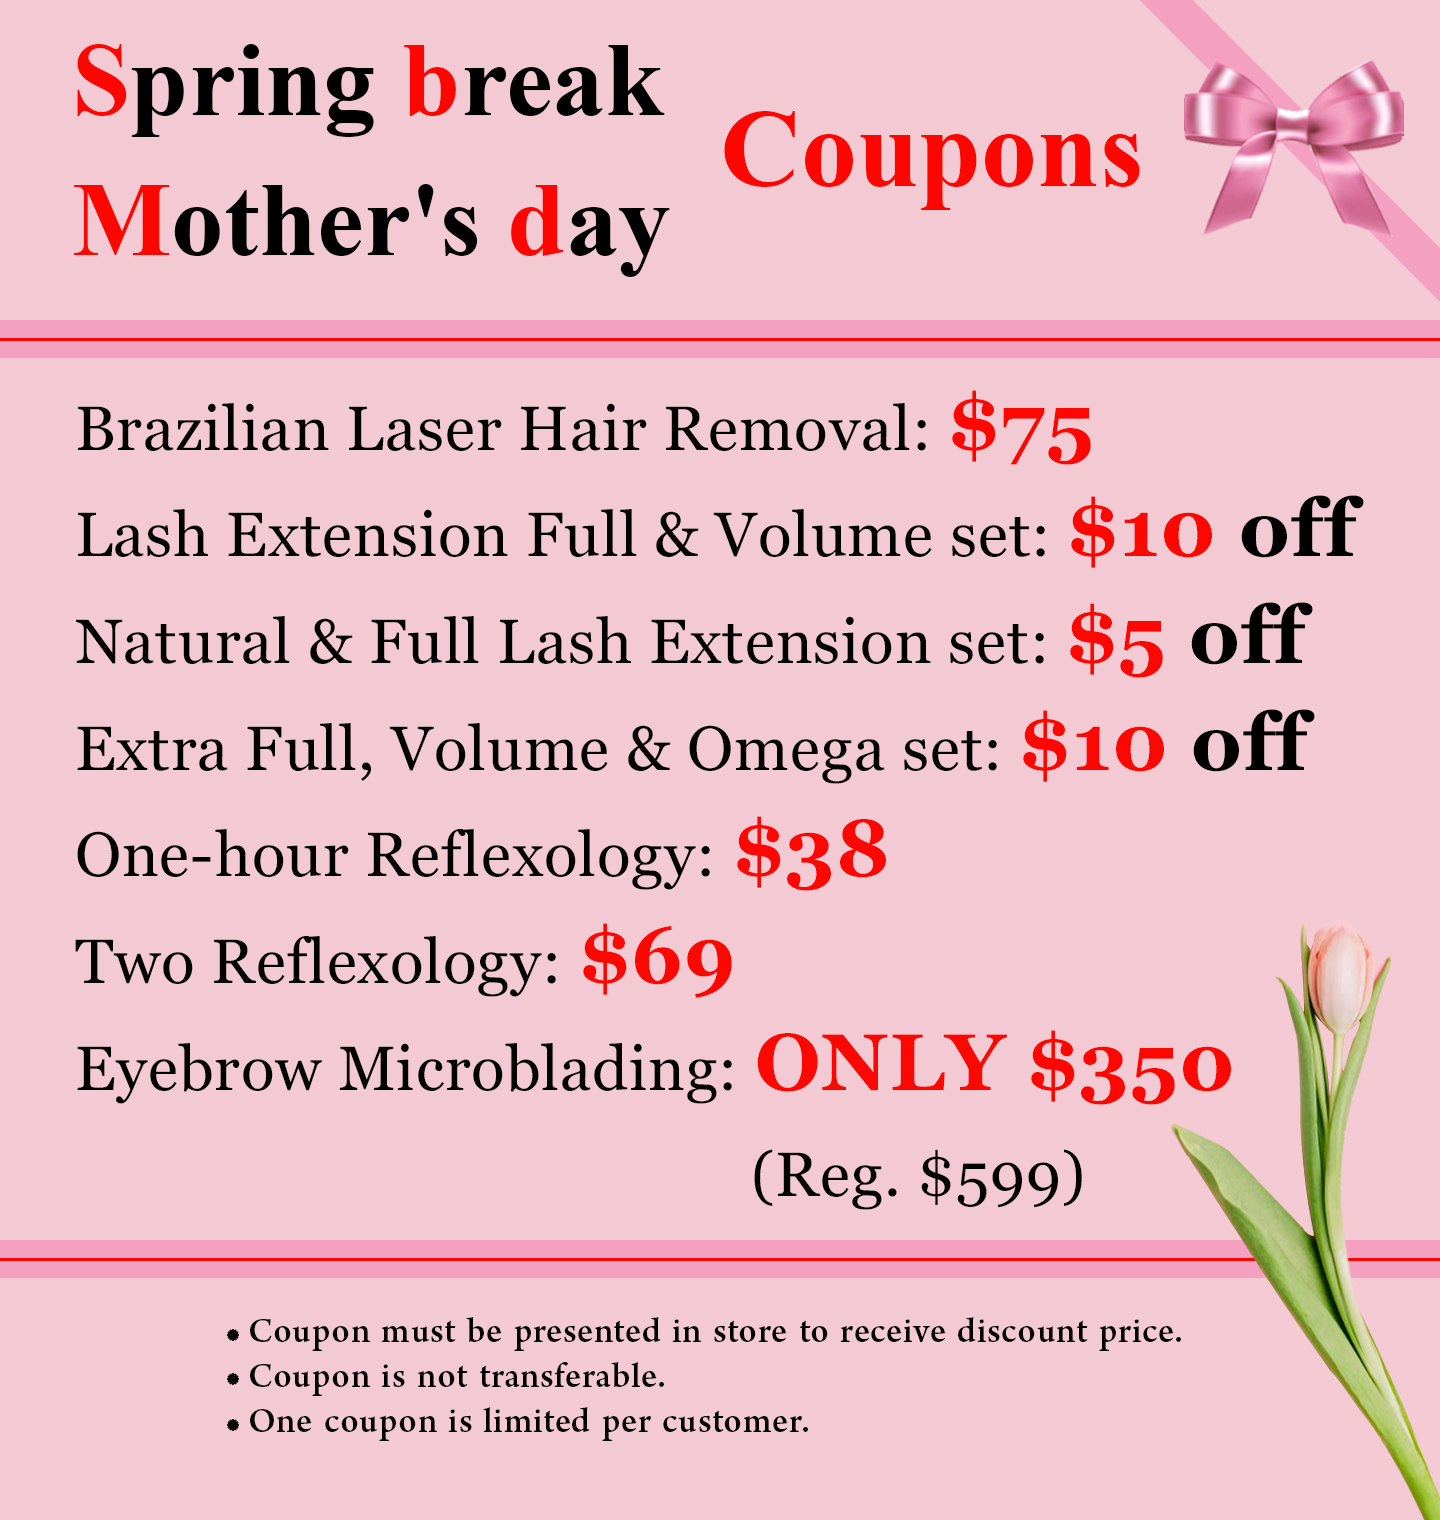 Coupon_SpringBreak-MotherDay_2020.jpg